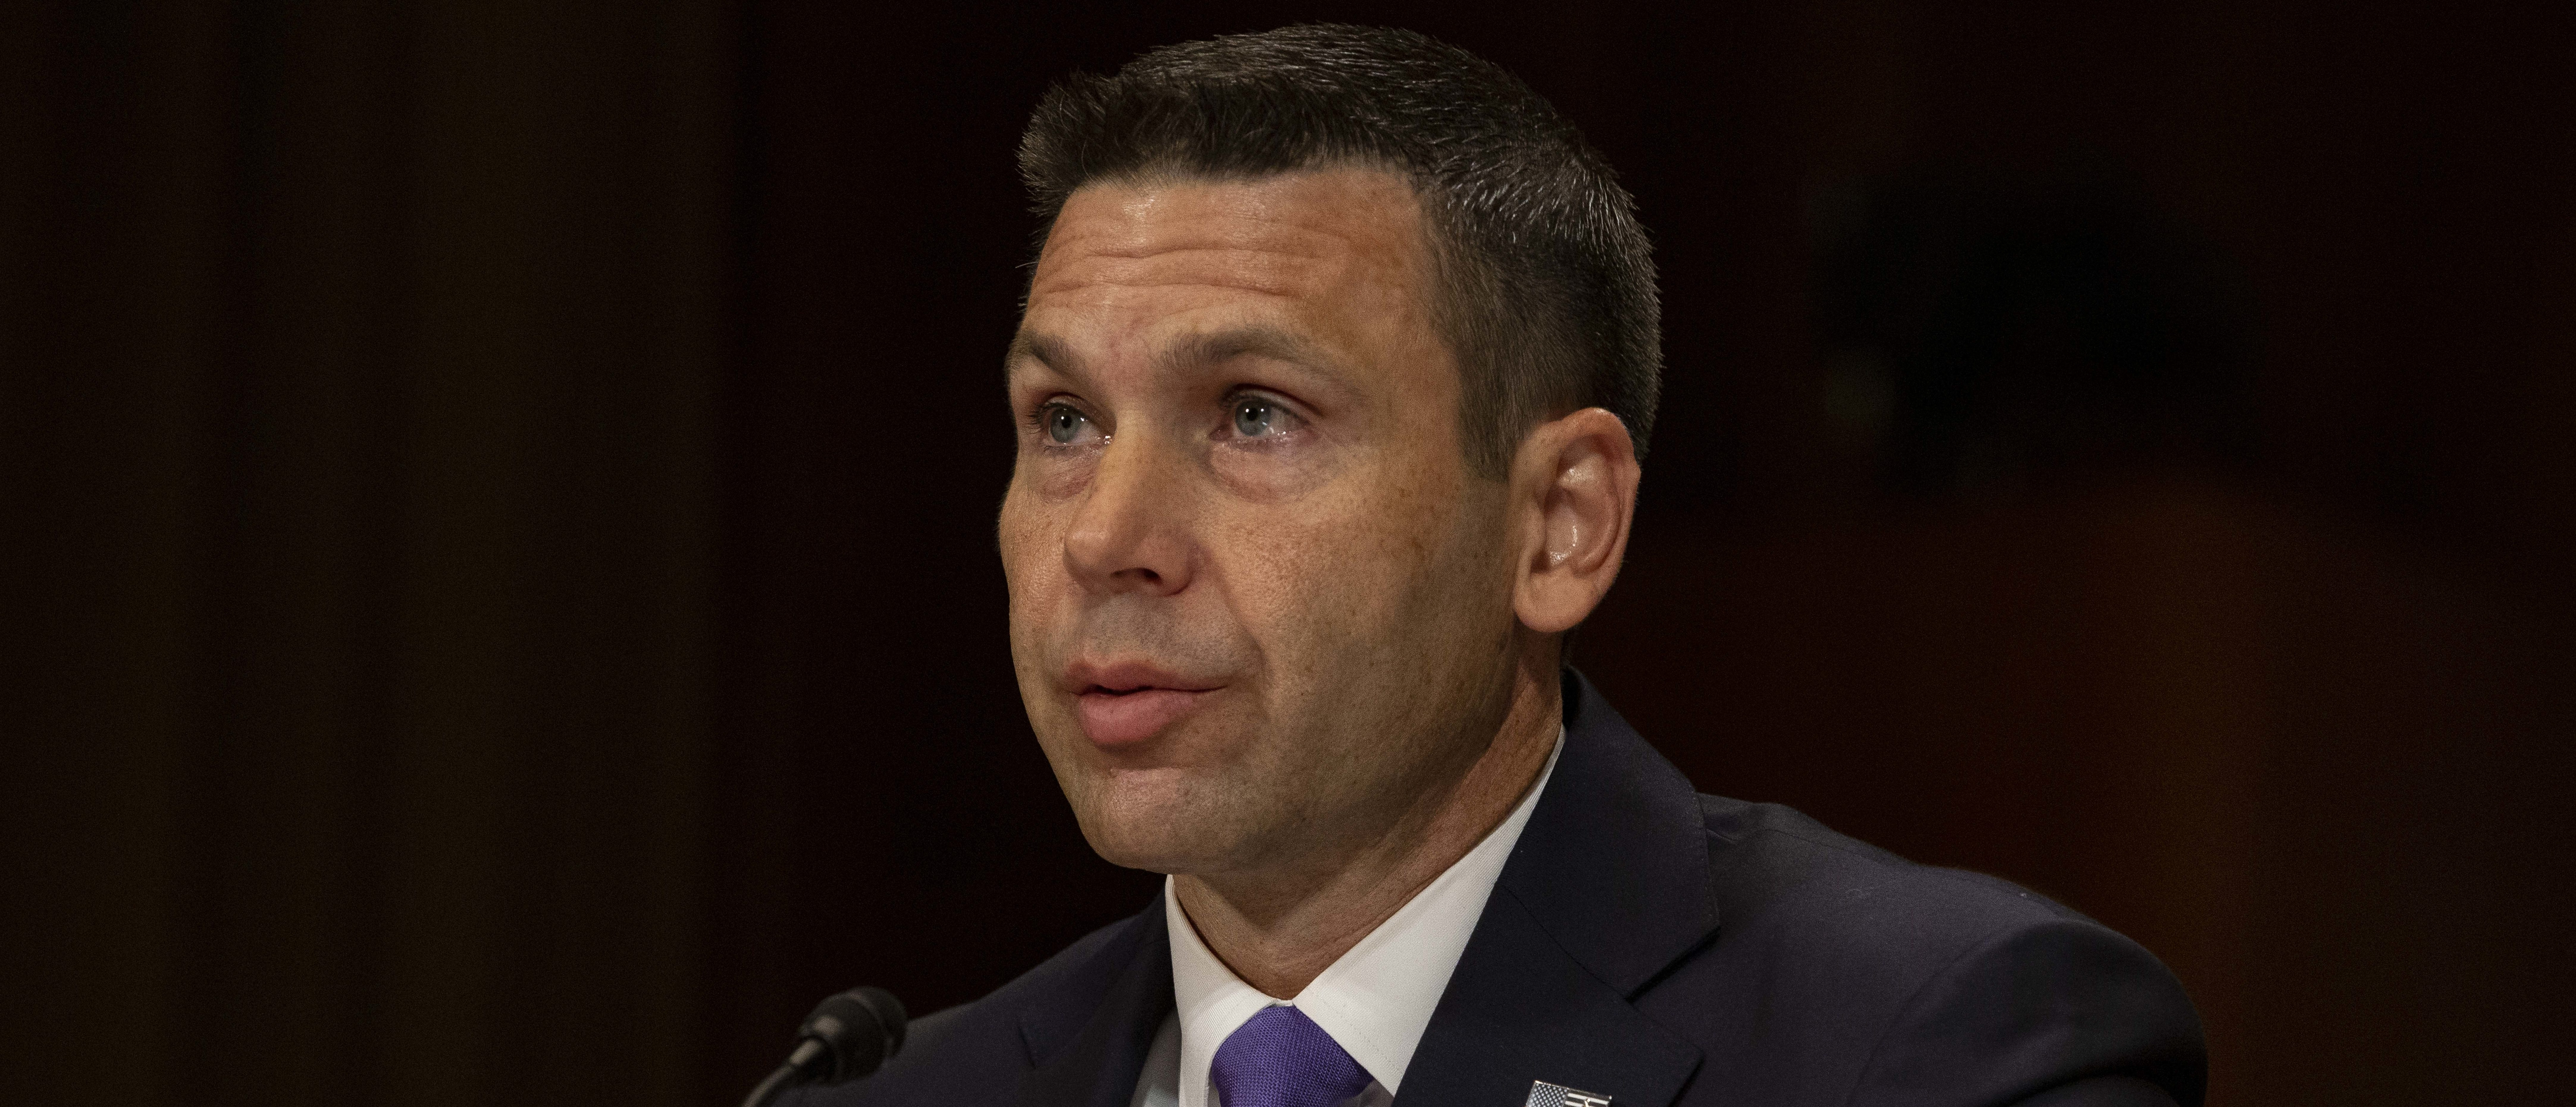 WASHINGTON, DC - JUNE 11: Acting Homeland Security Secretary Kevin McAleenan speaks during a hearing with the Senate Judiciary Committee on Capitol Hill on June 11, 2019 in Washington, DC. Members of the committee and the witness discussed the Secure and Protect Act of 2019 and how it would fix the crisis at the U.S. Southern Border. (Photo by Anna Moneymaker/Getty Images)